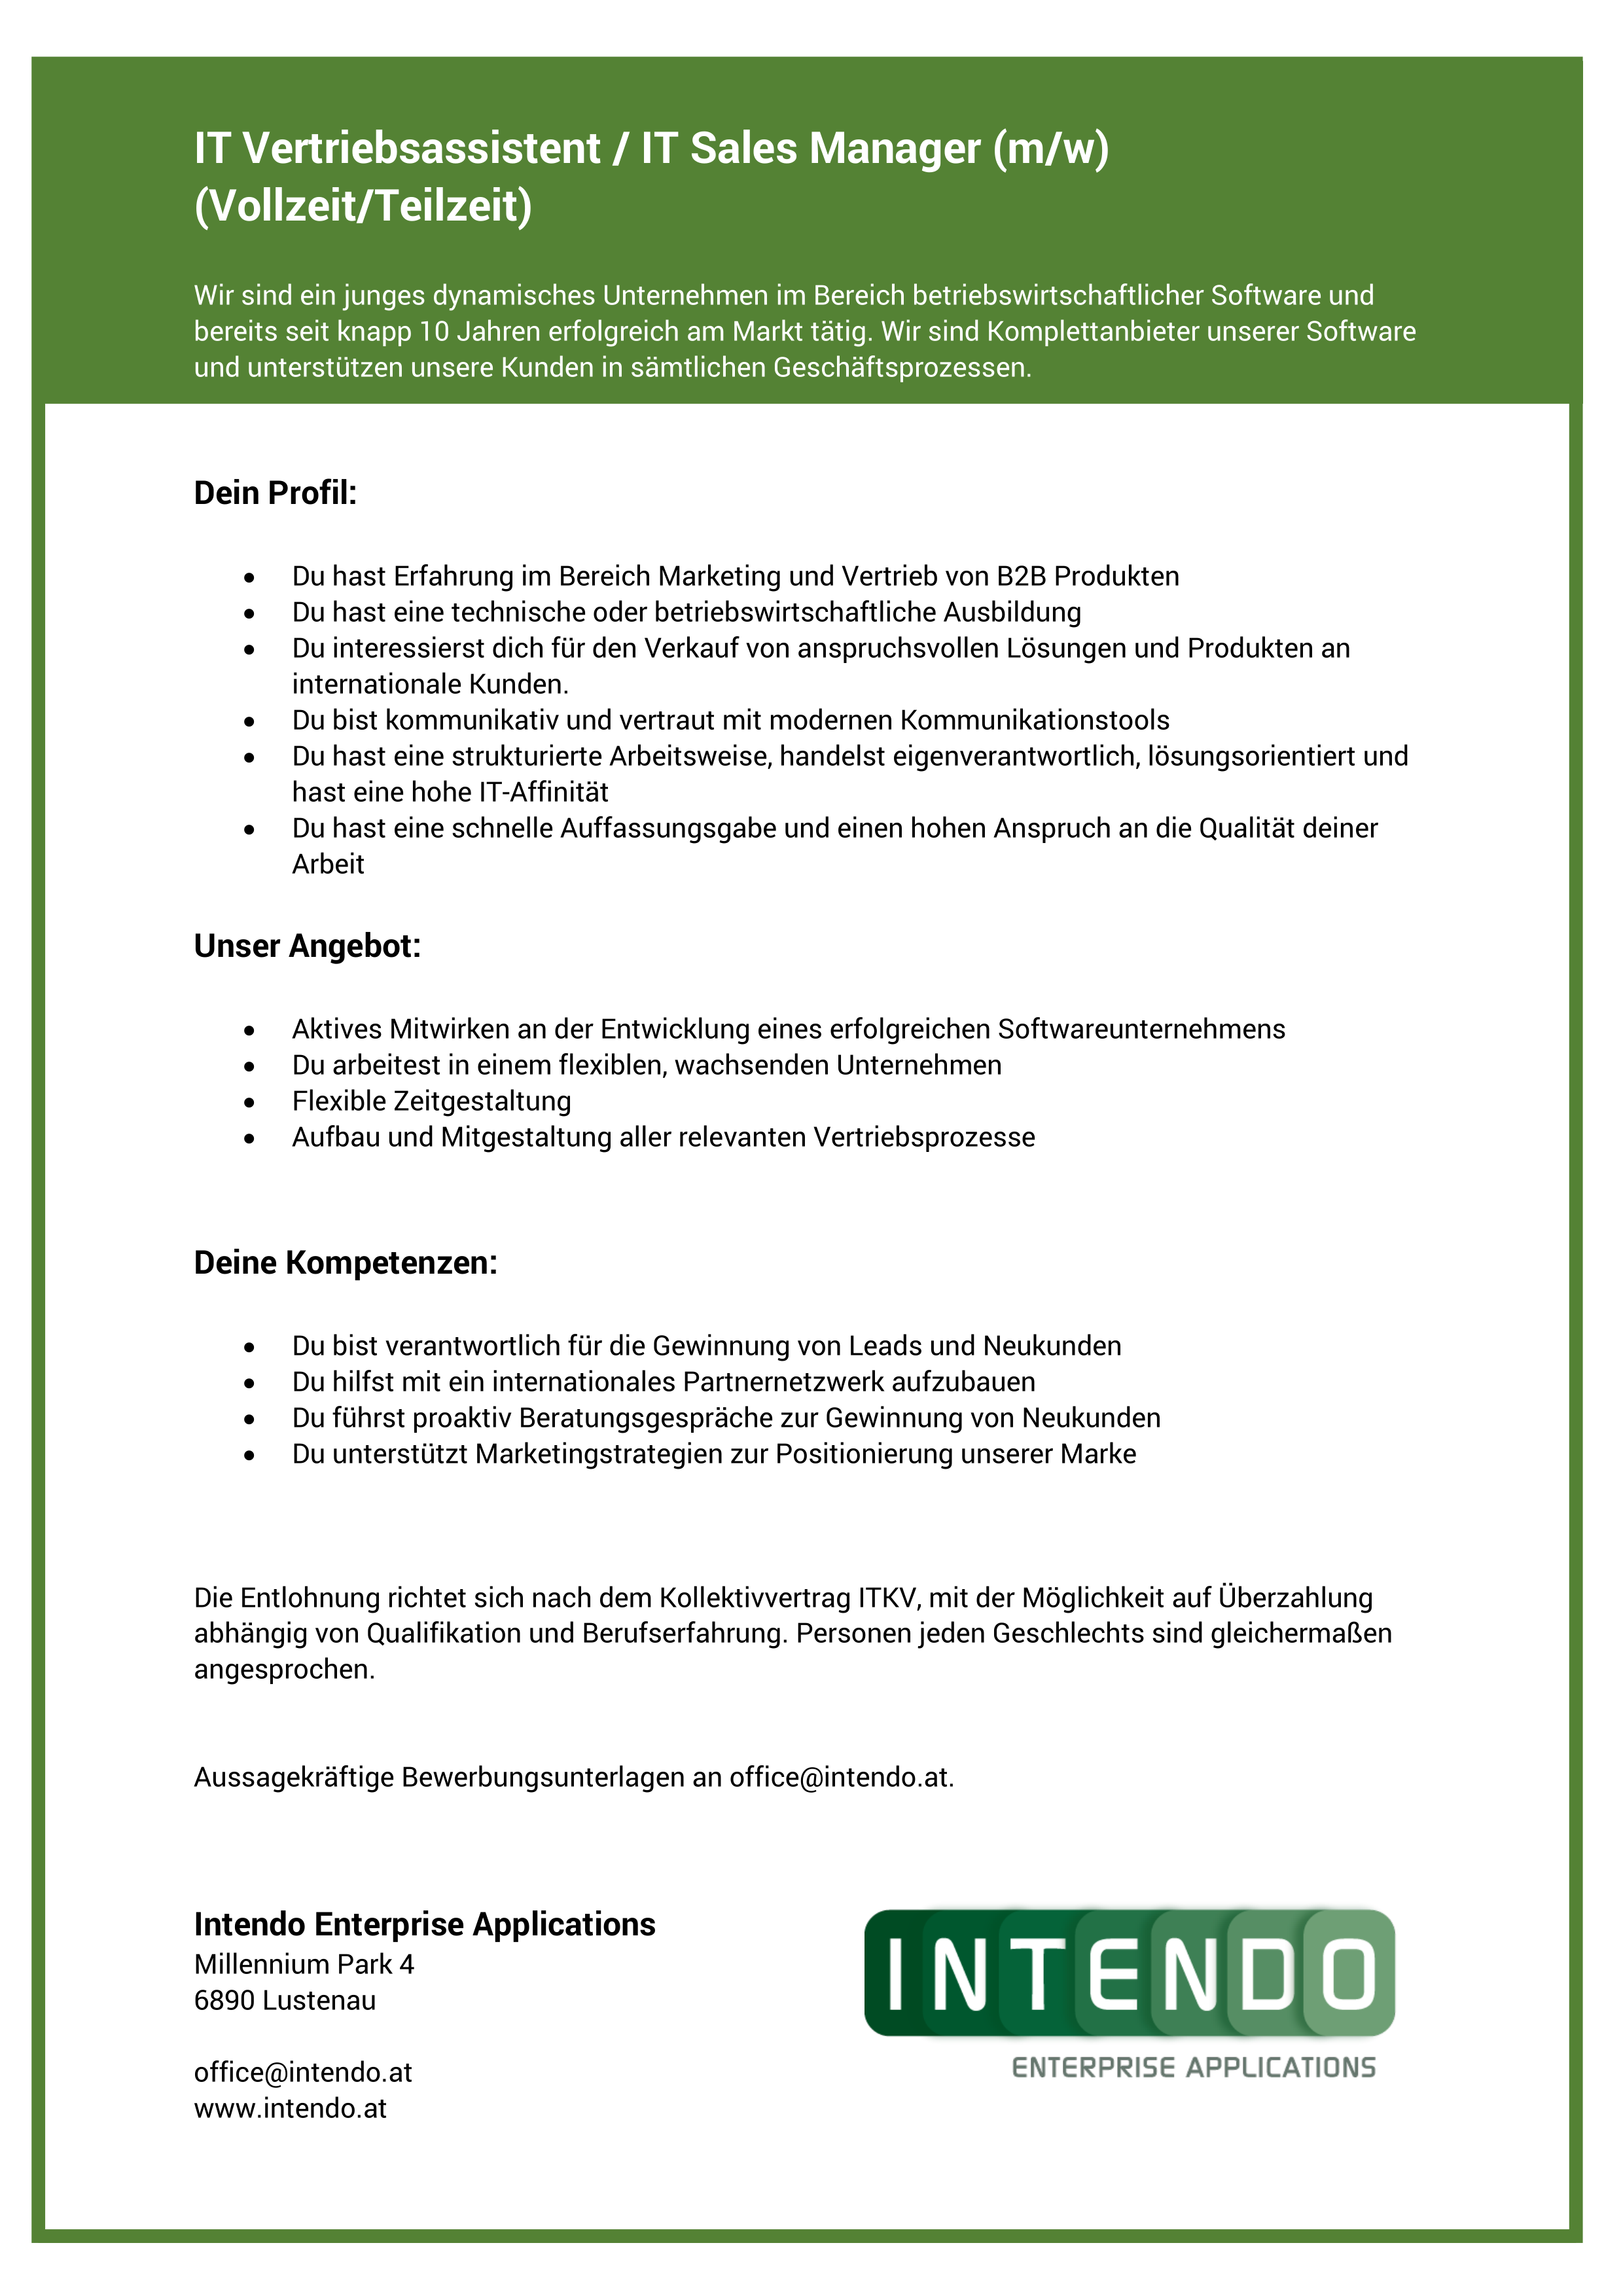 IT Vertriebsassistent / IT Sales Manager (m/w)